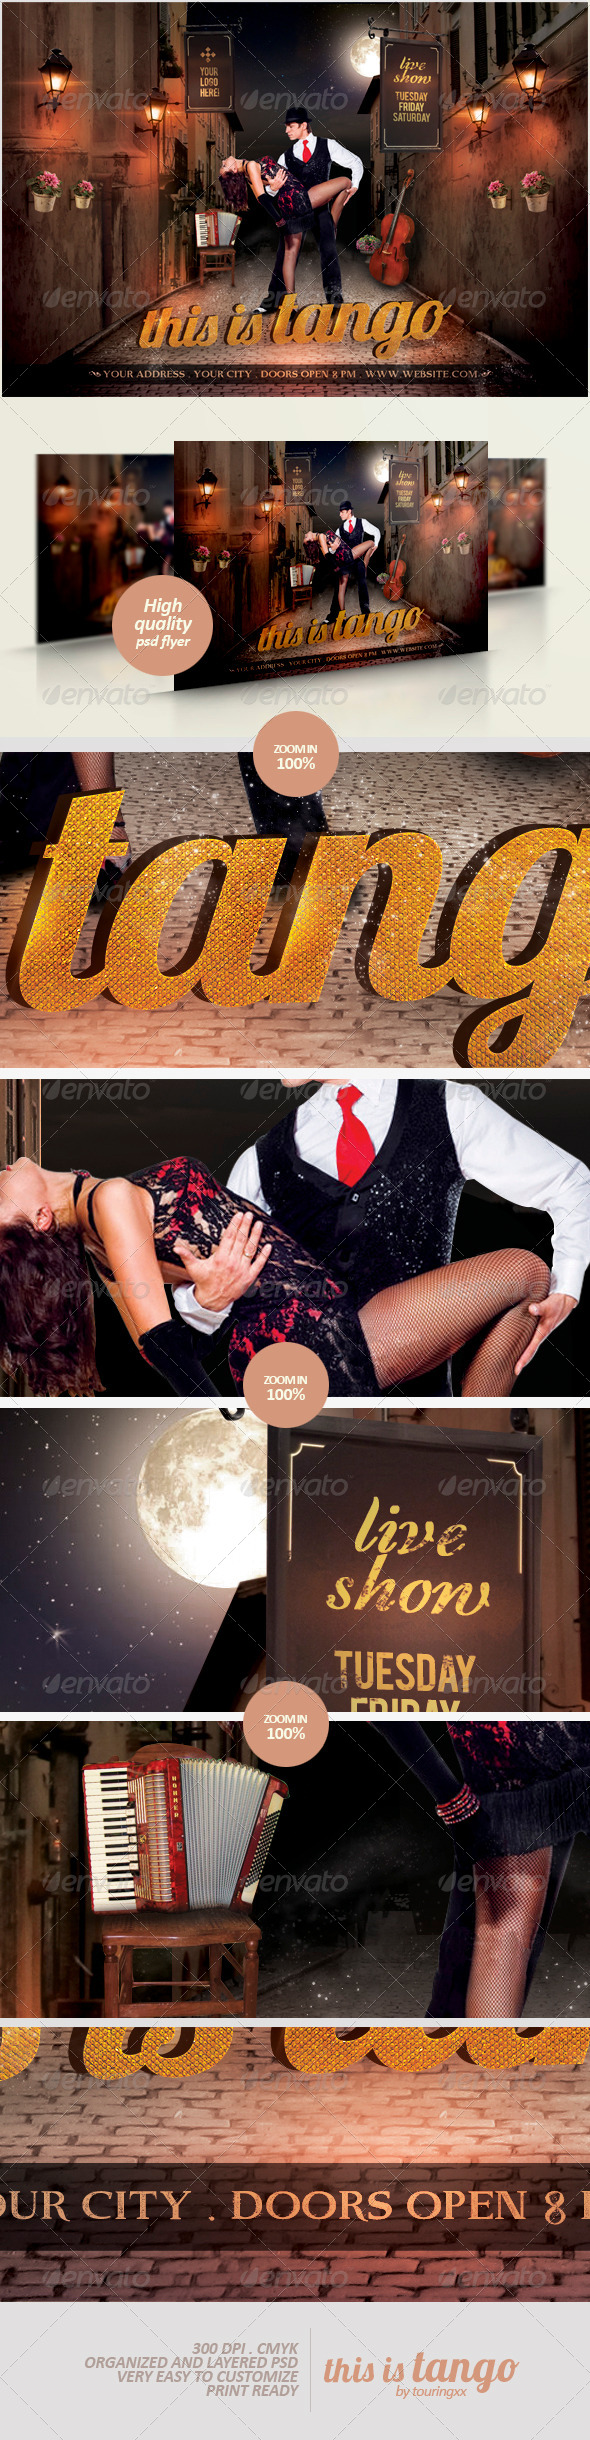 This Is Tango Flyer Template - Clubs & Parties Events